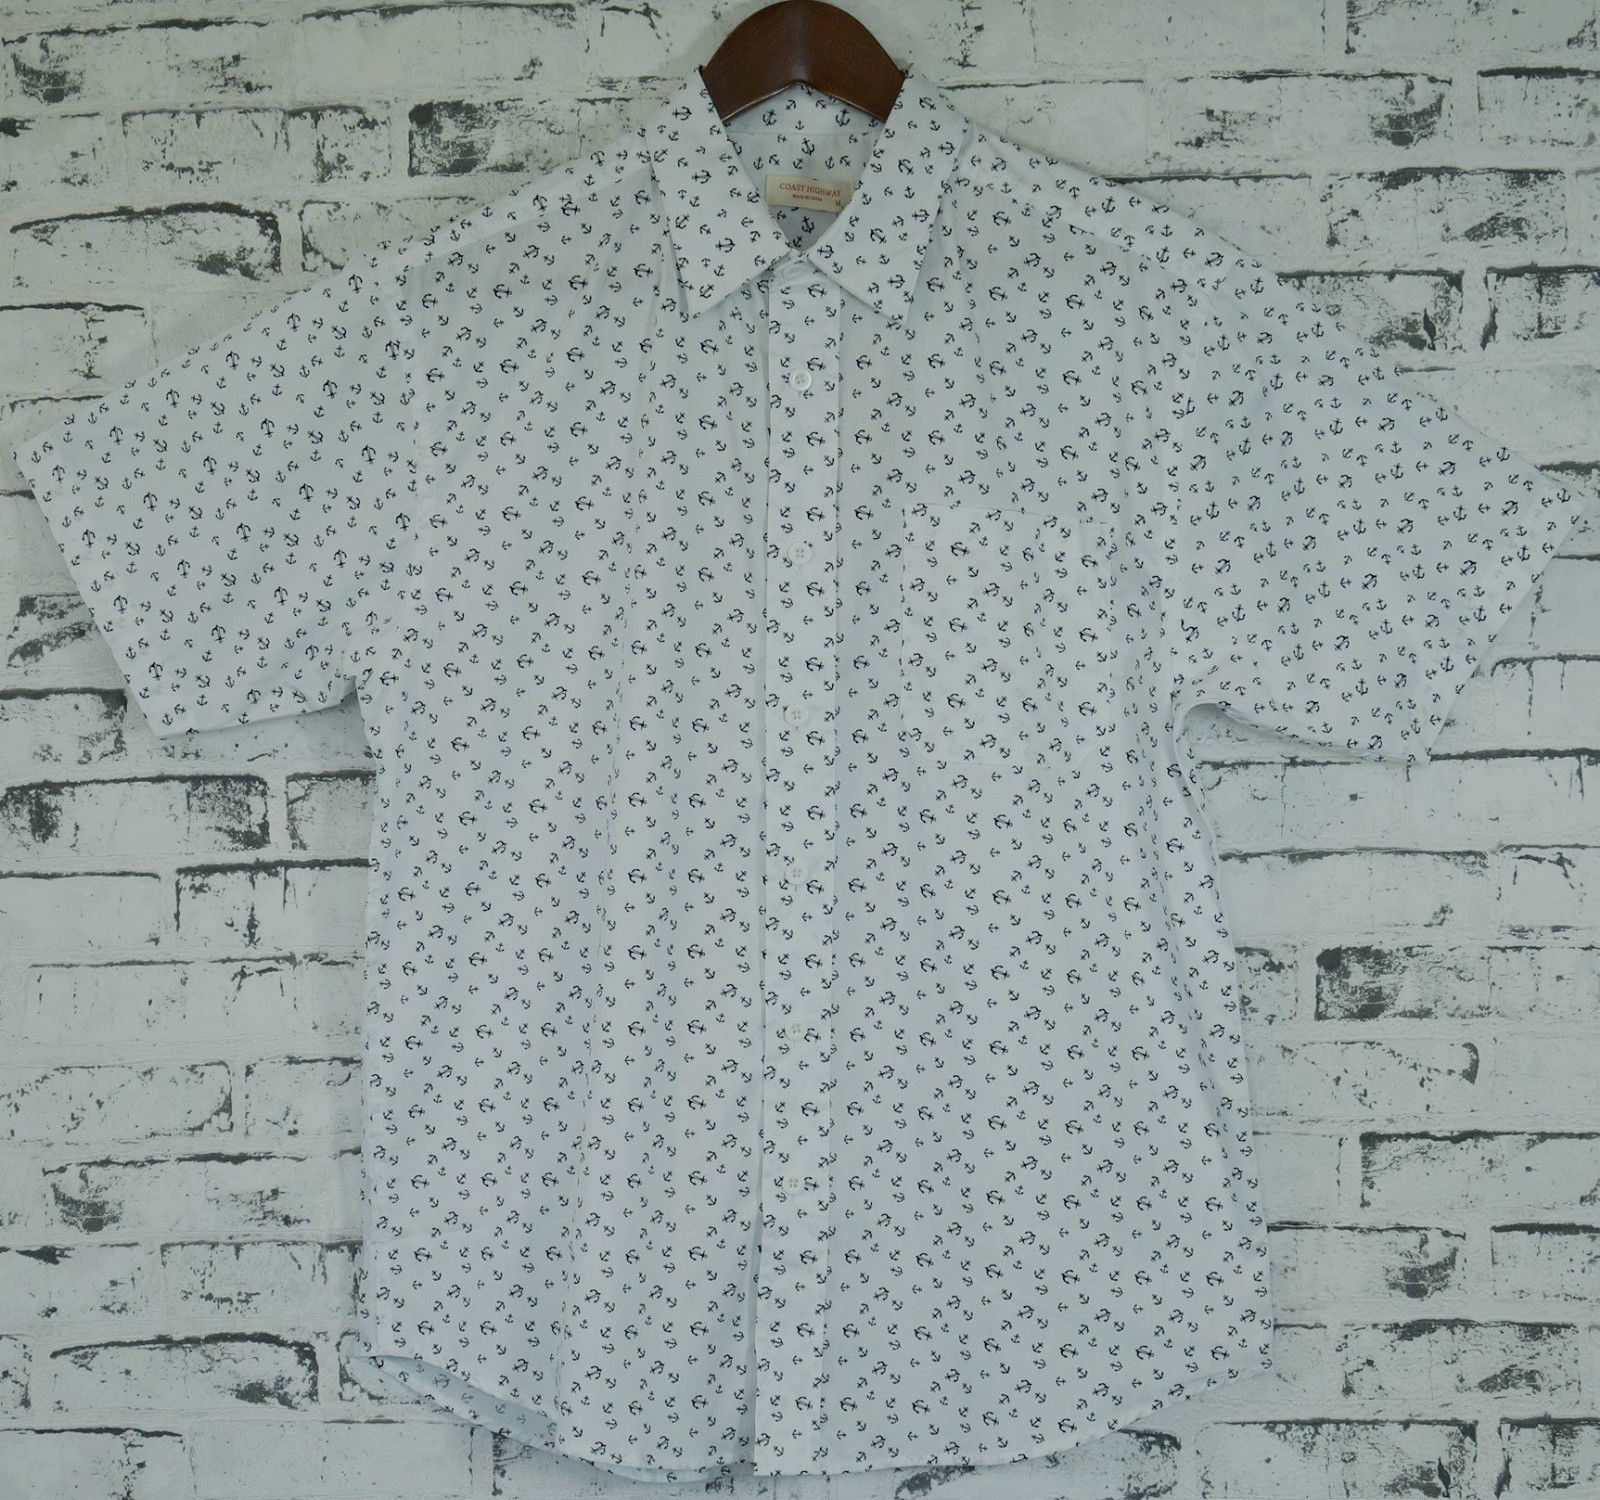 Men-039-s-MARINE-ANCHOR-SHIRT-100-COTTON-Surf-Party-Short-Sleeve-Vintage-S-6XL thumbnail 9